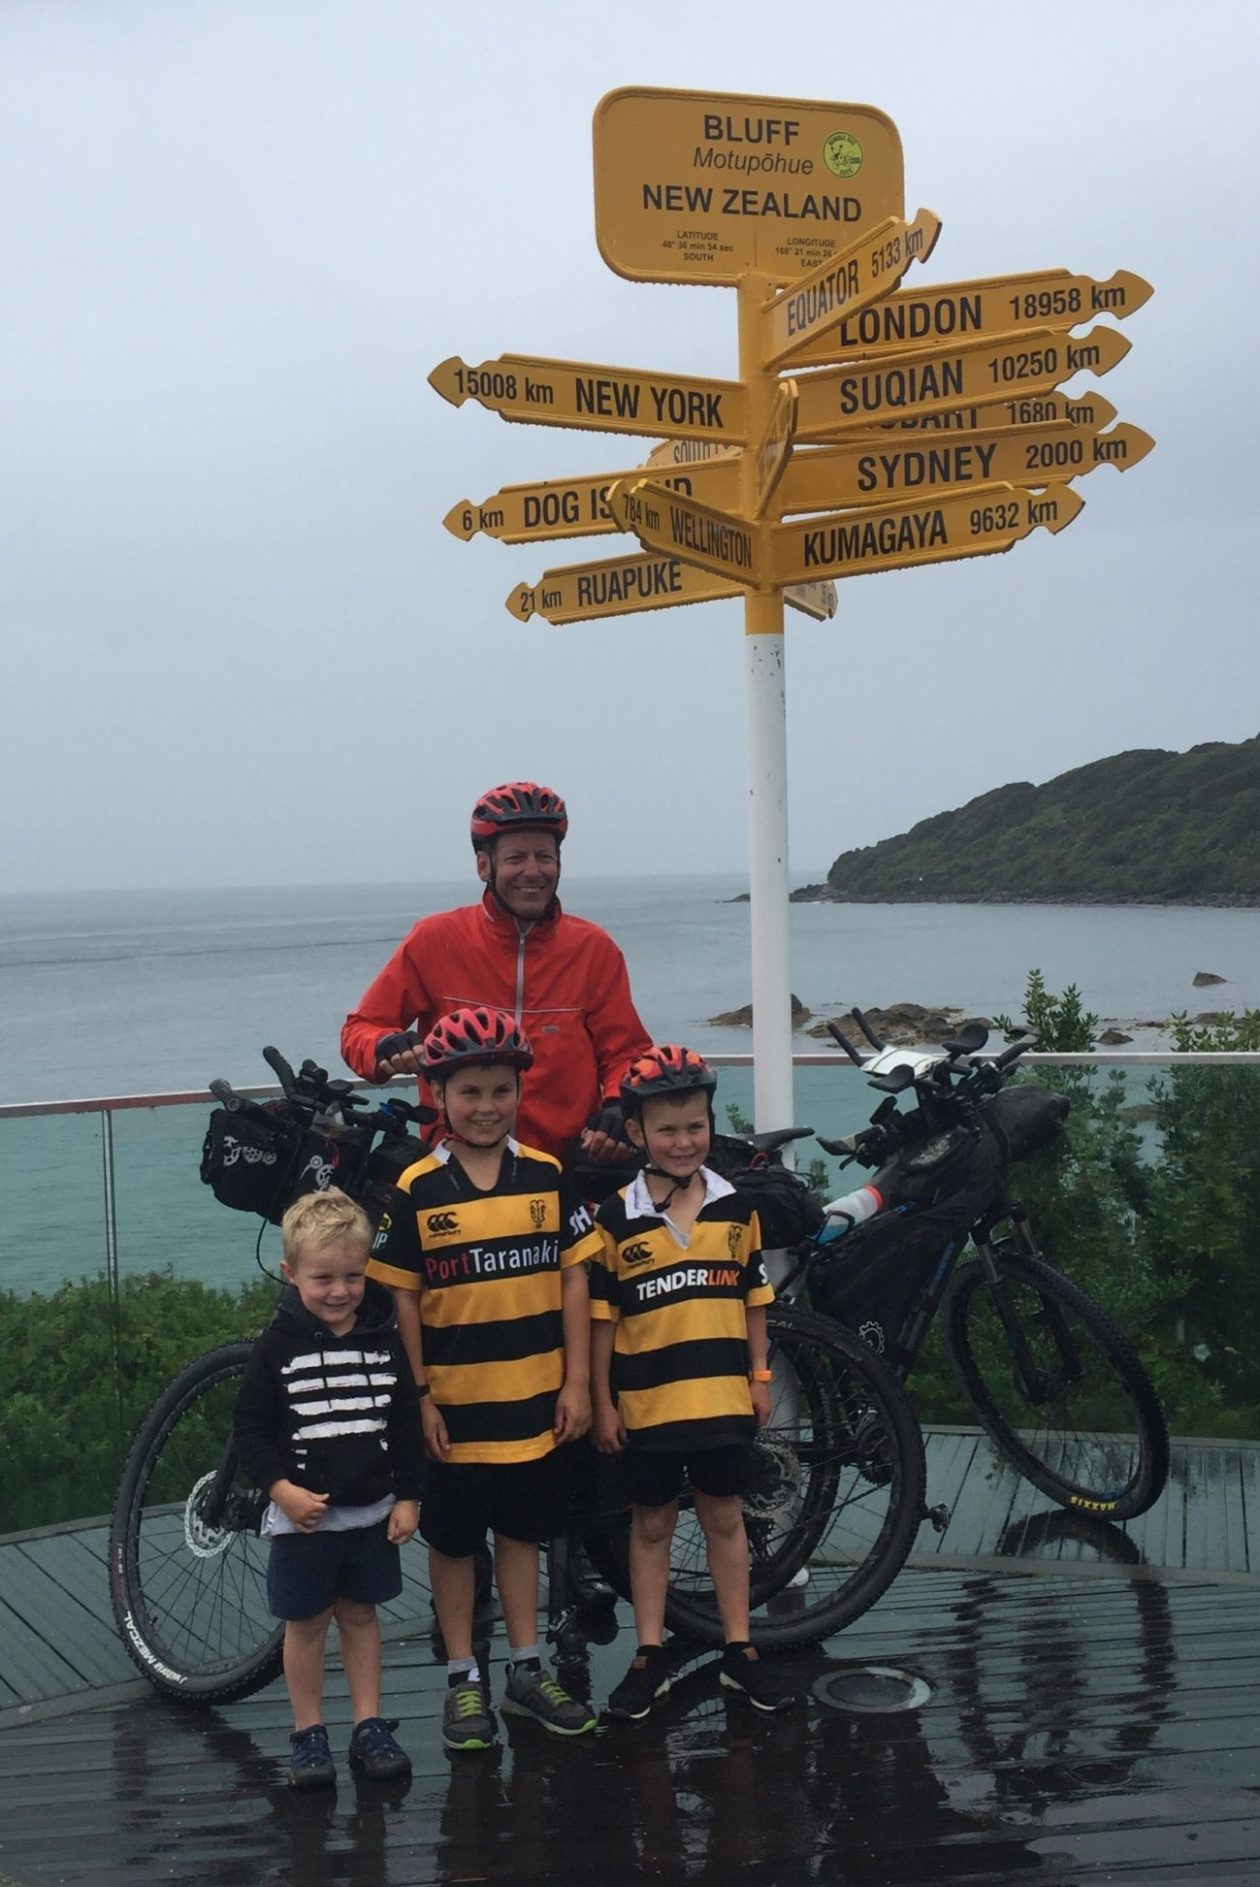 Mark at the Bluff viewpoint with his bike and his nephews smiling in the rain